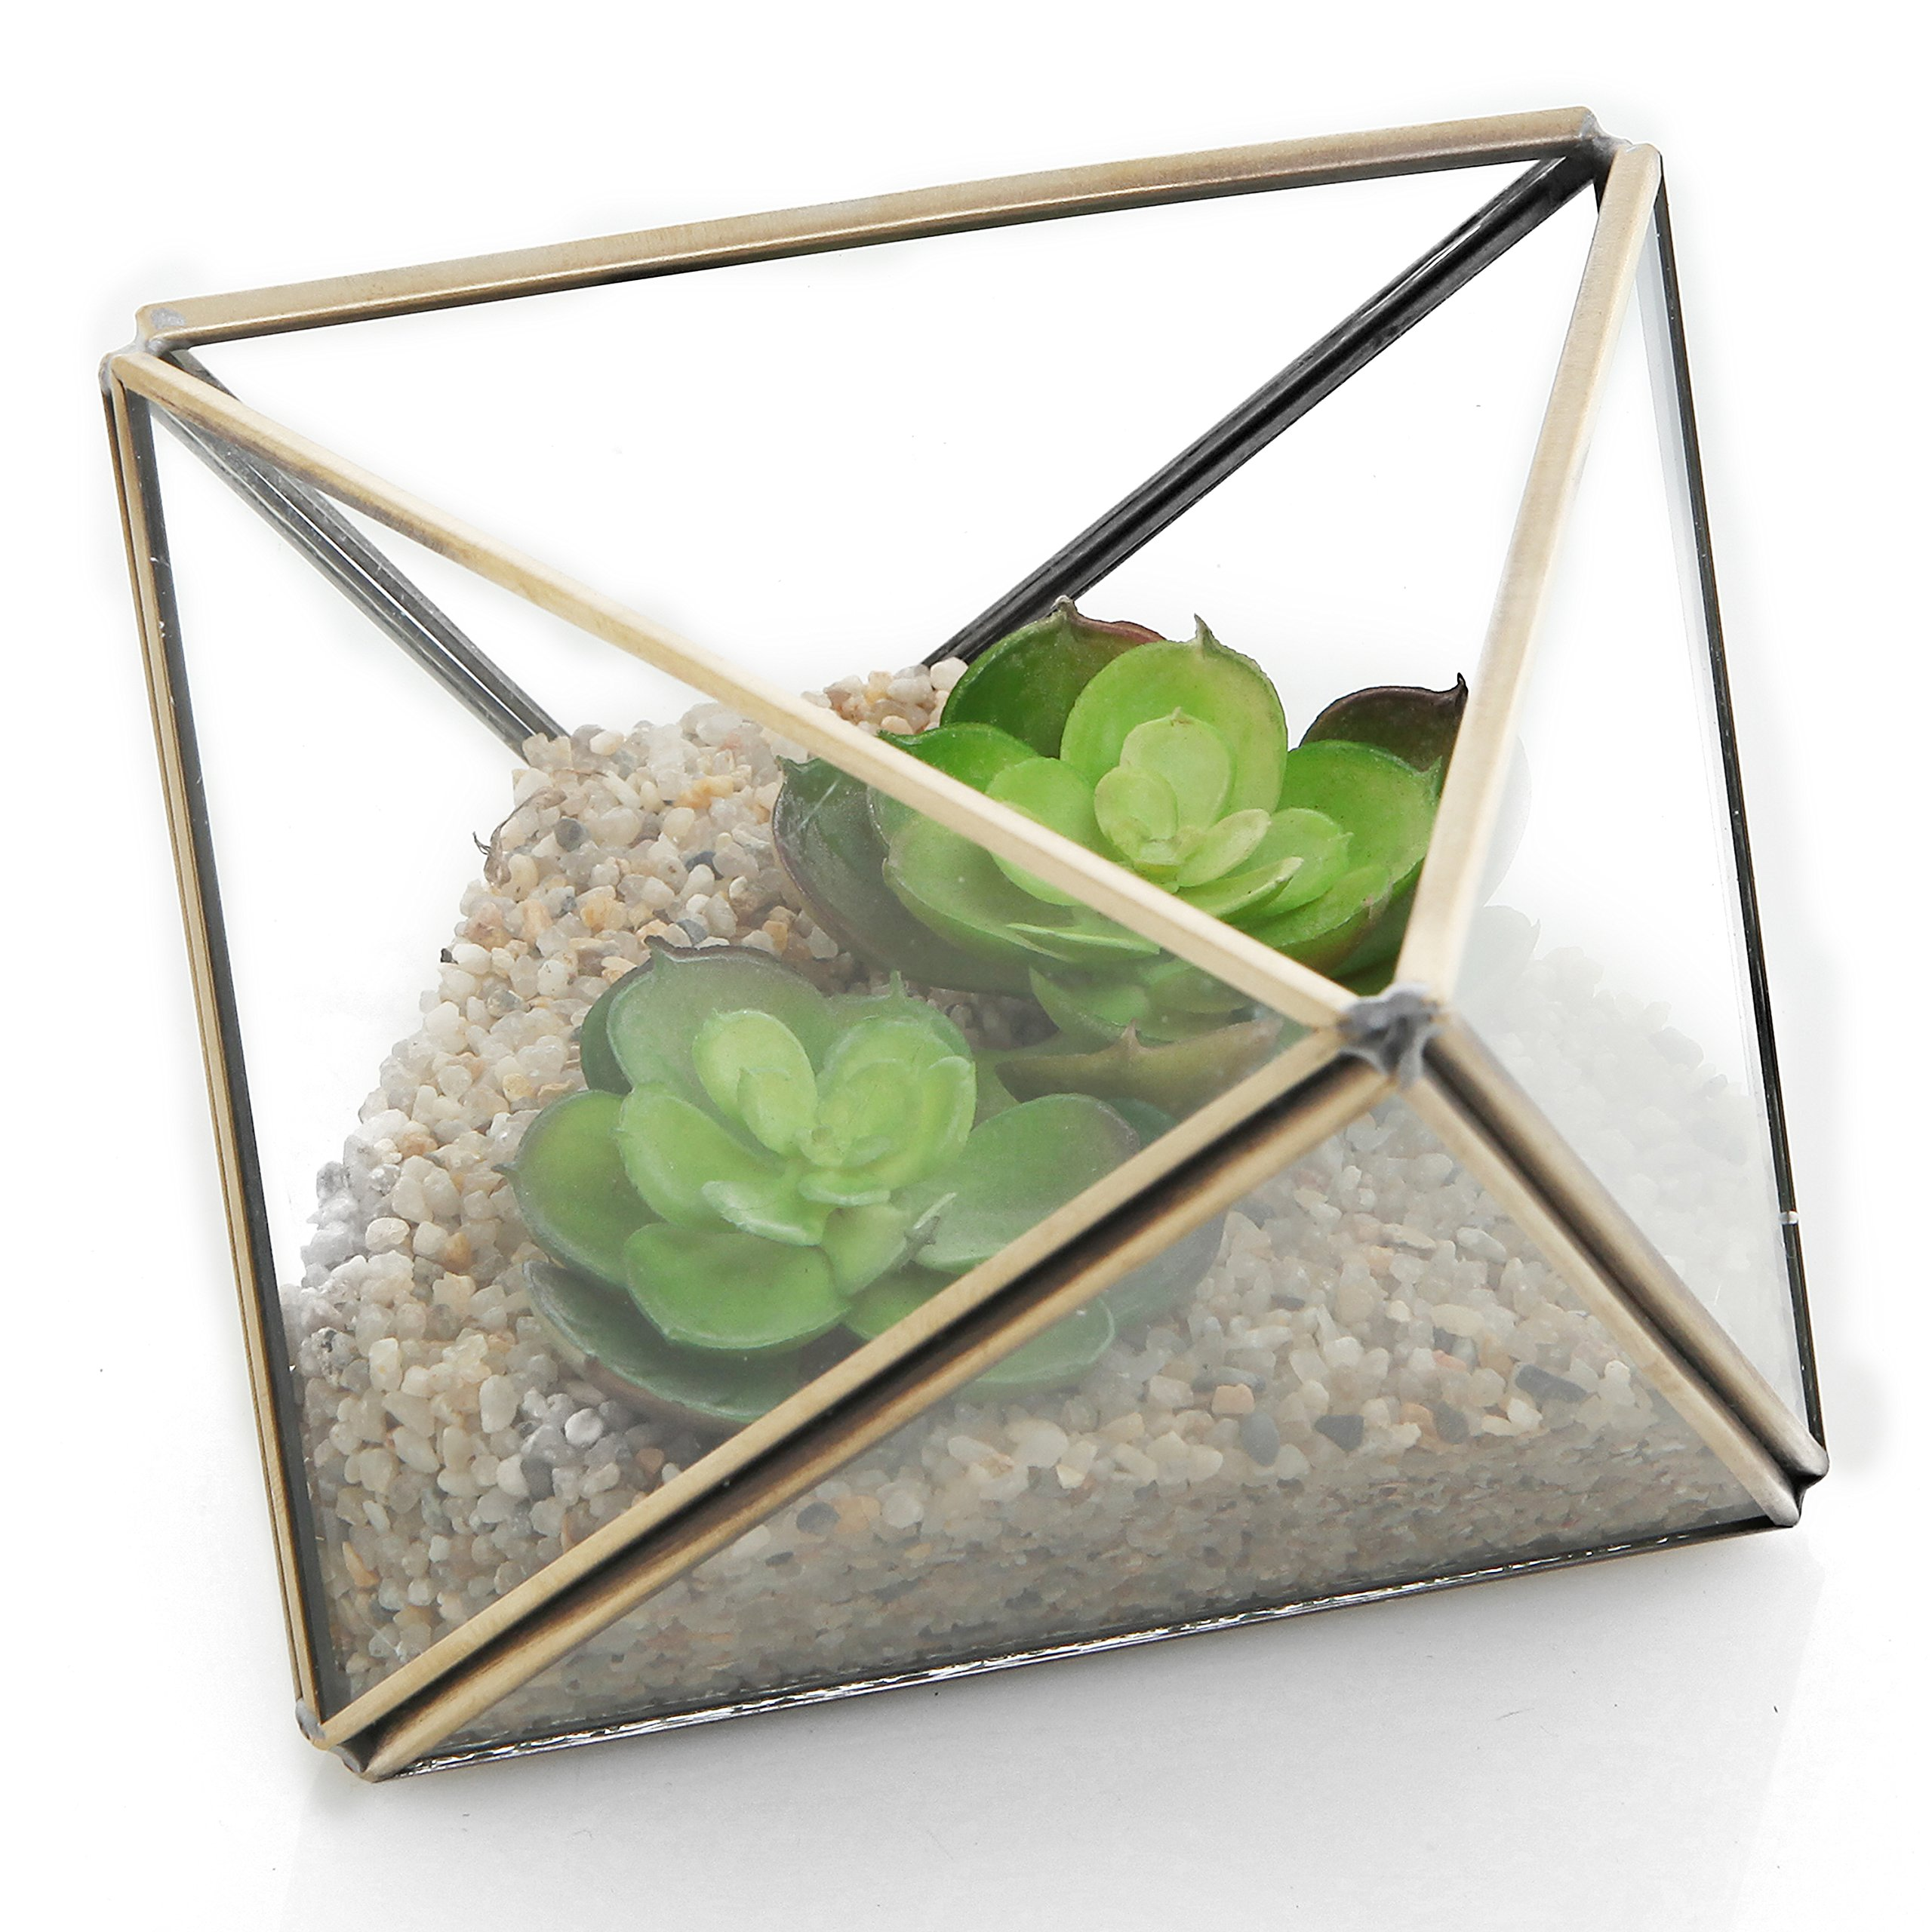 MyGift Diamond Shape Glass Prism Terrarium with Brass Rim/Air Plant Display Case/Tea Light Candle Holder by MyGift